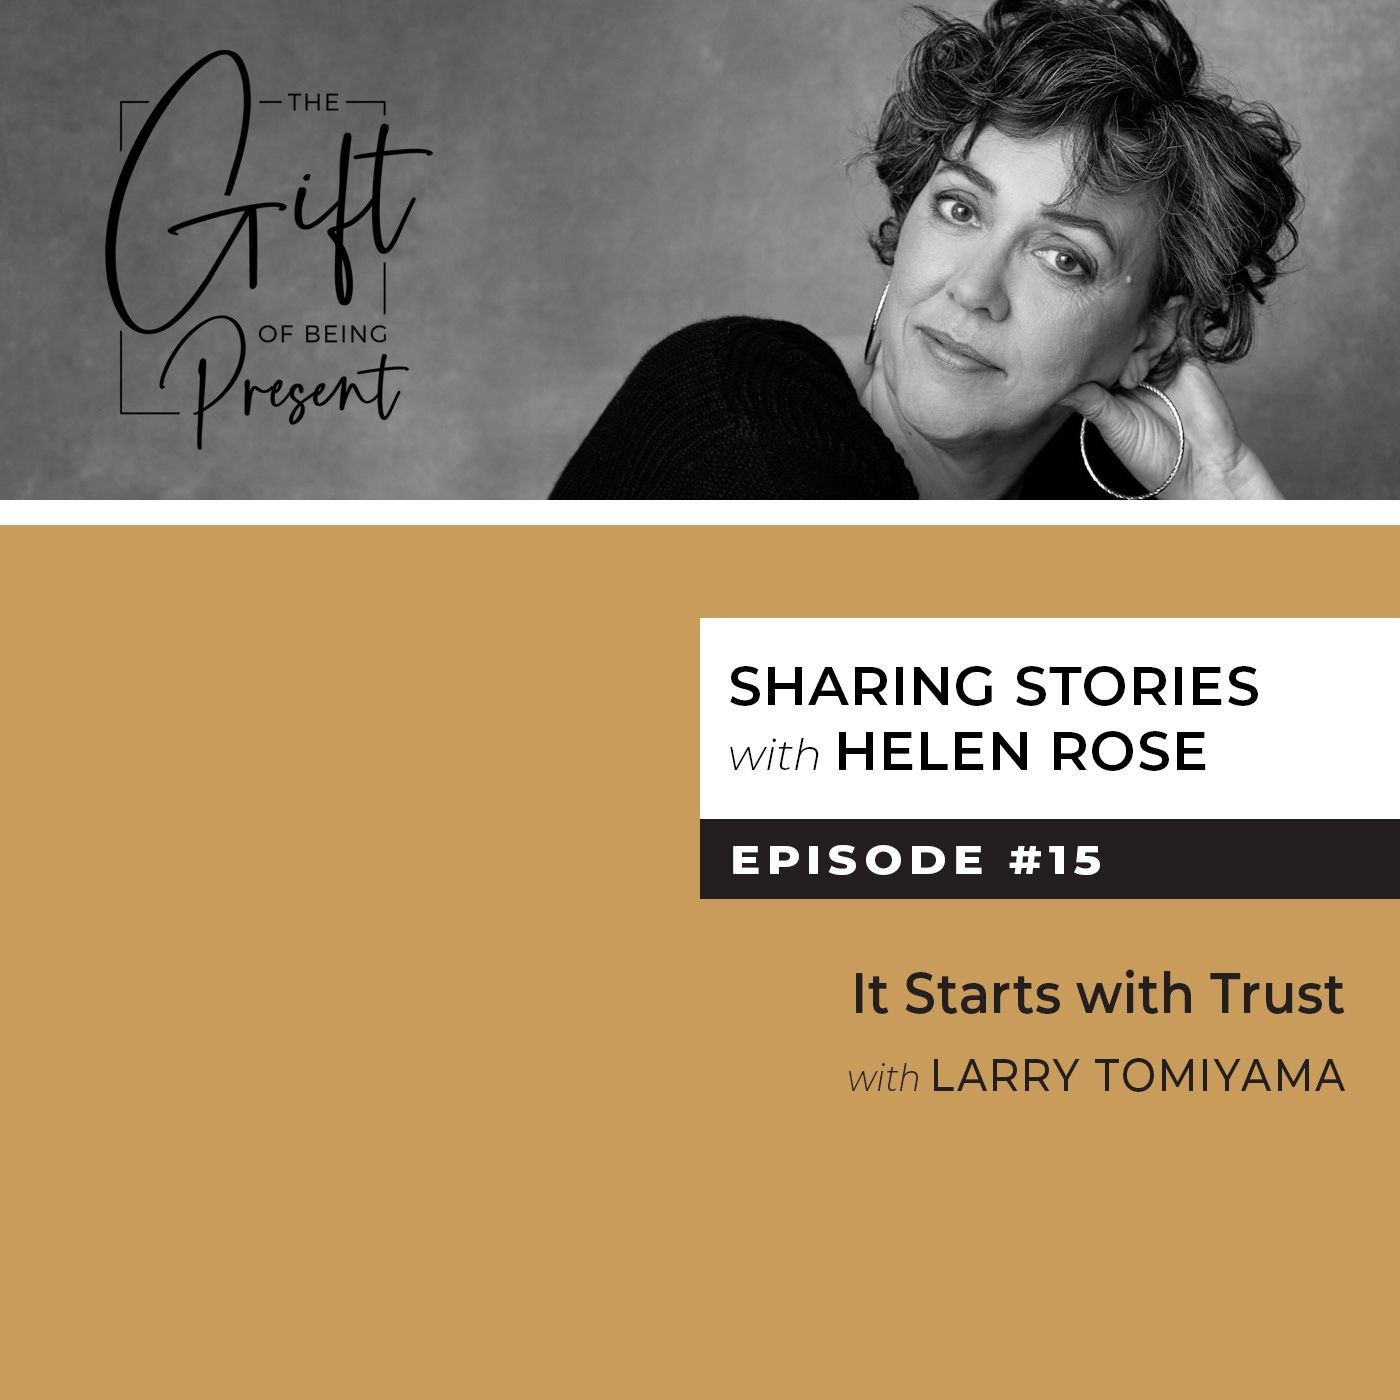 It Starts with Trust with Larry Tomiyama